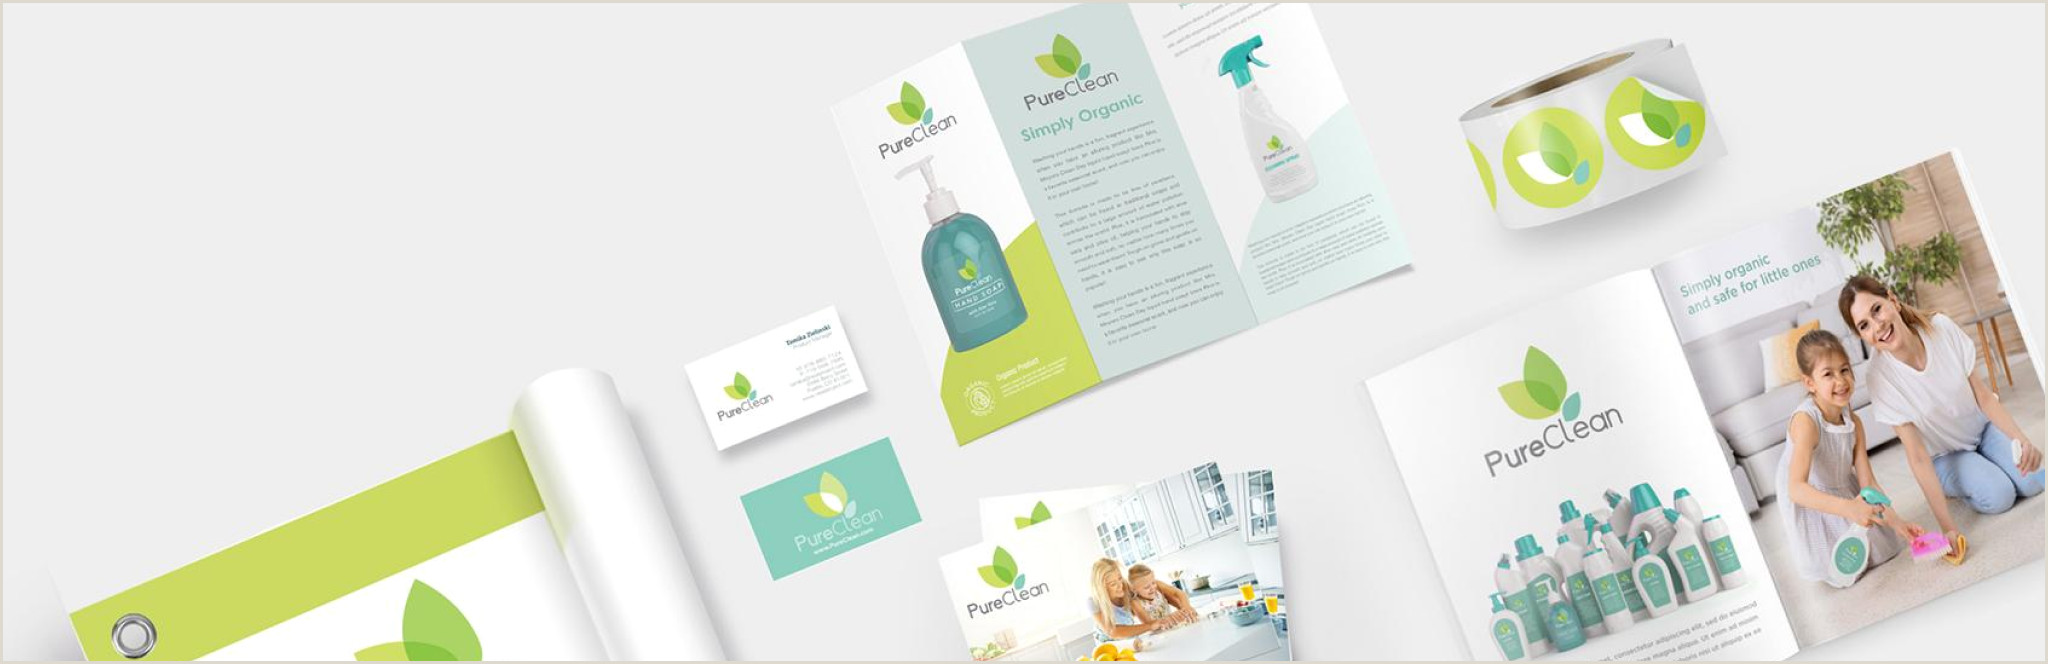 Best Designed Business Cards Printplace High Quality Line Printing Services